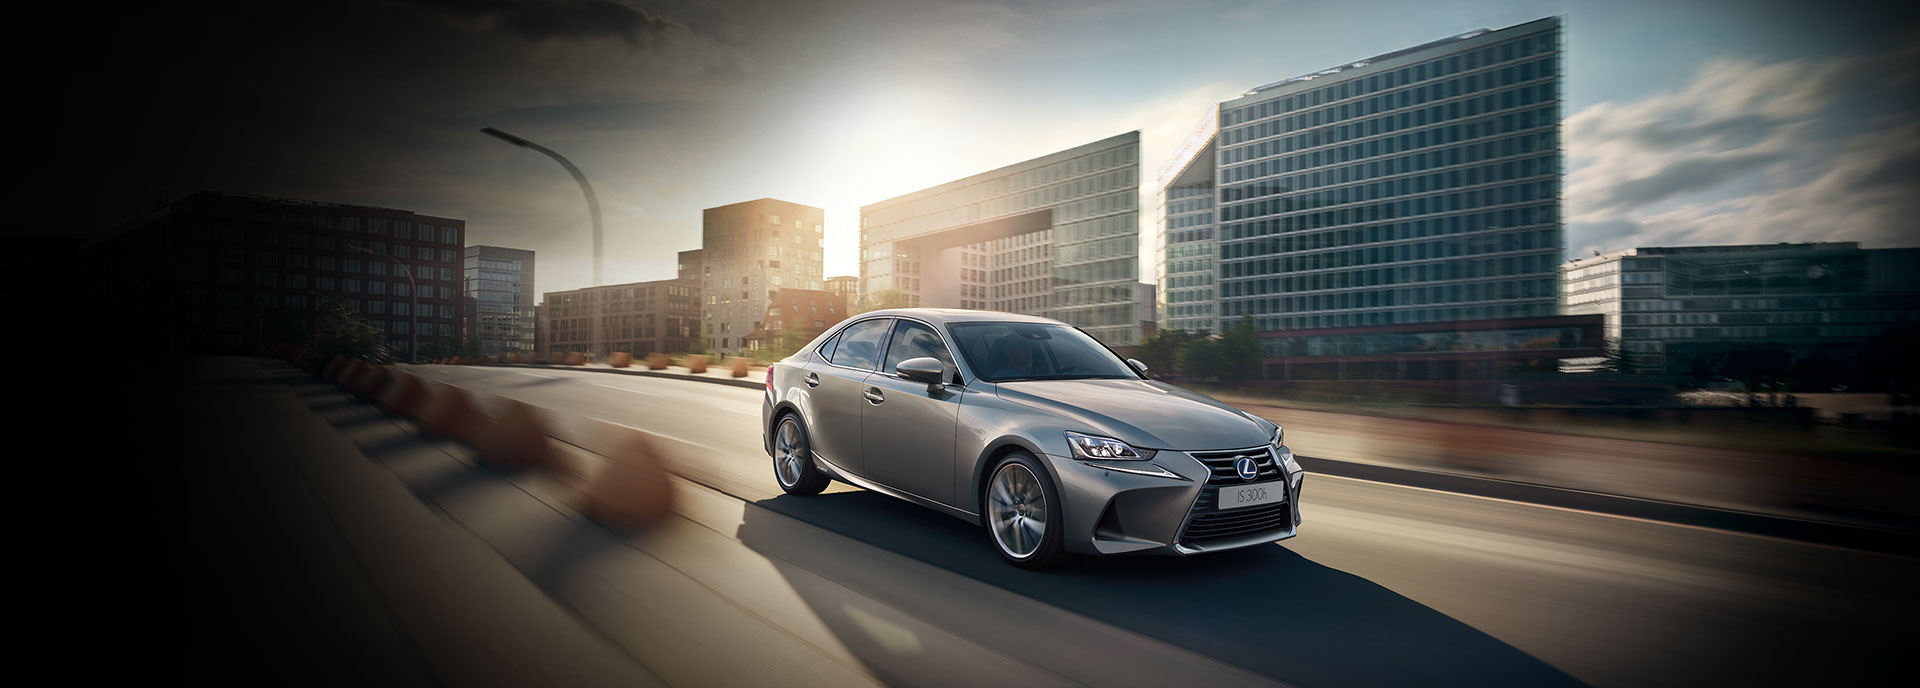 business lexus is 1920x688 v2 image